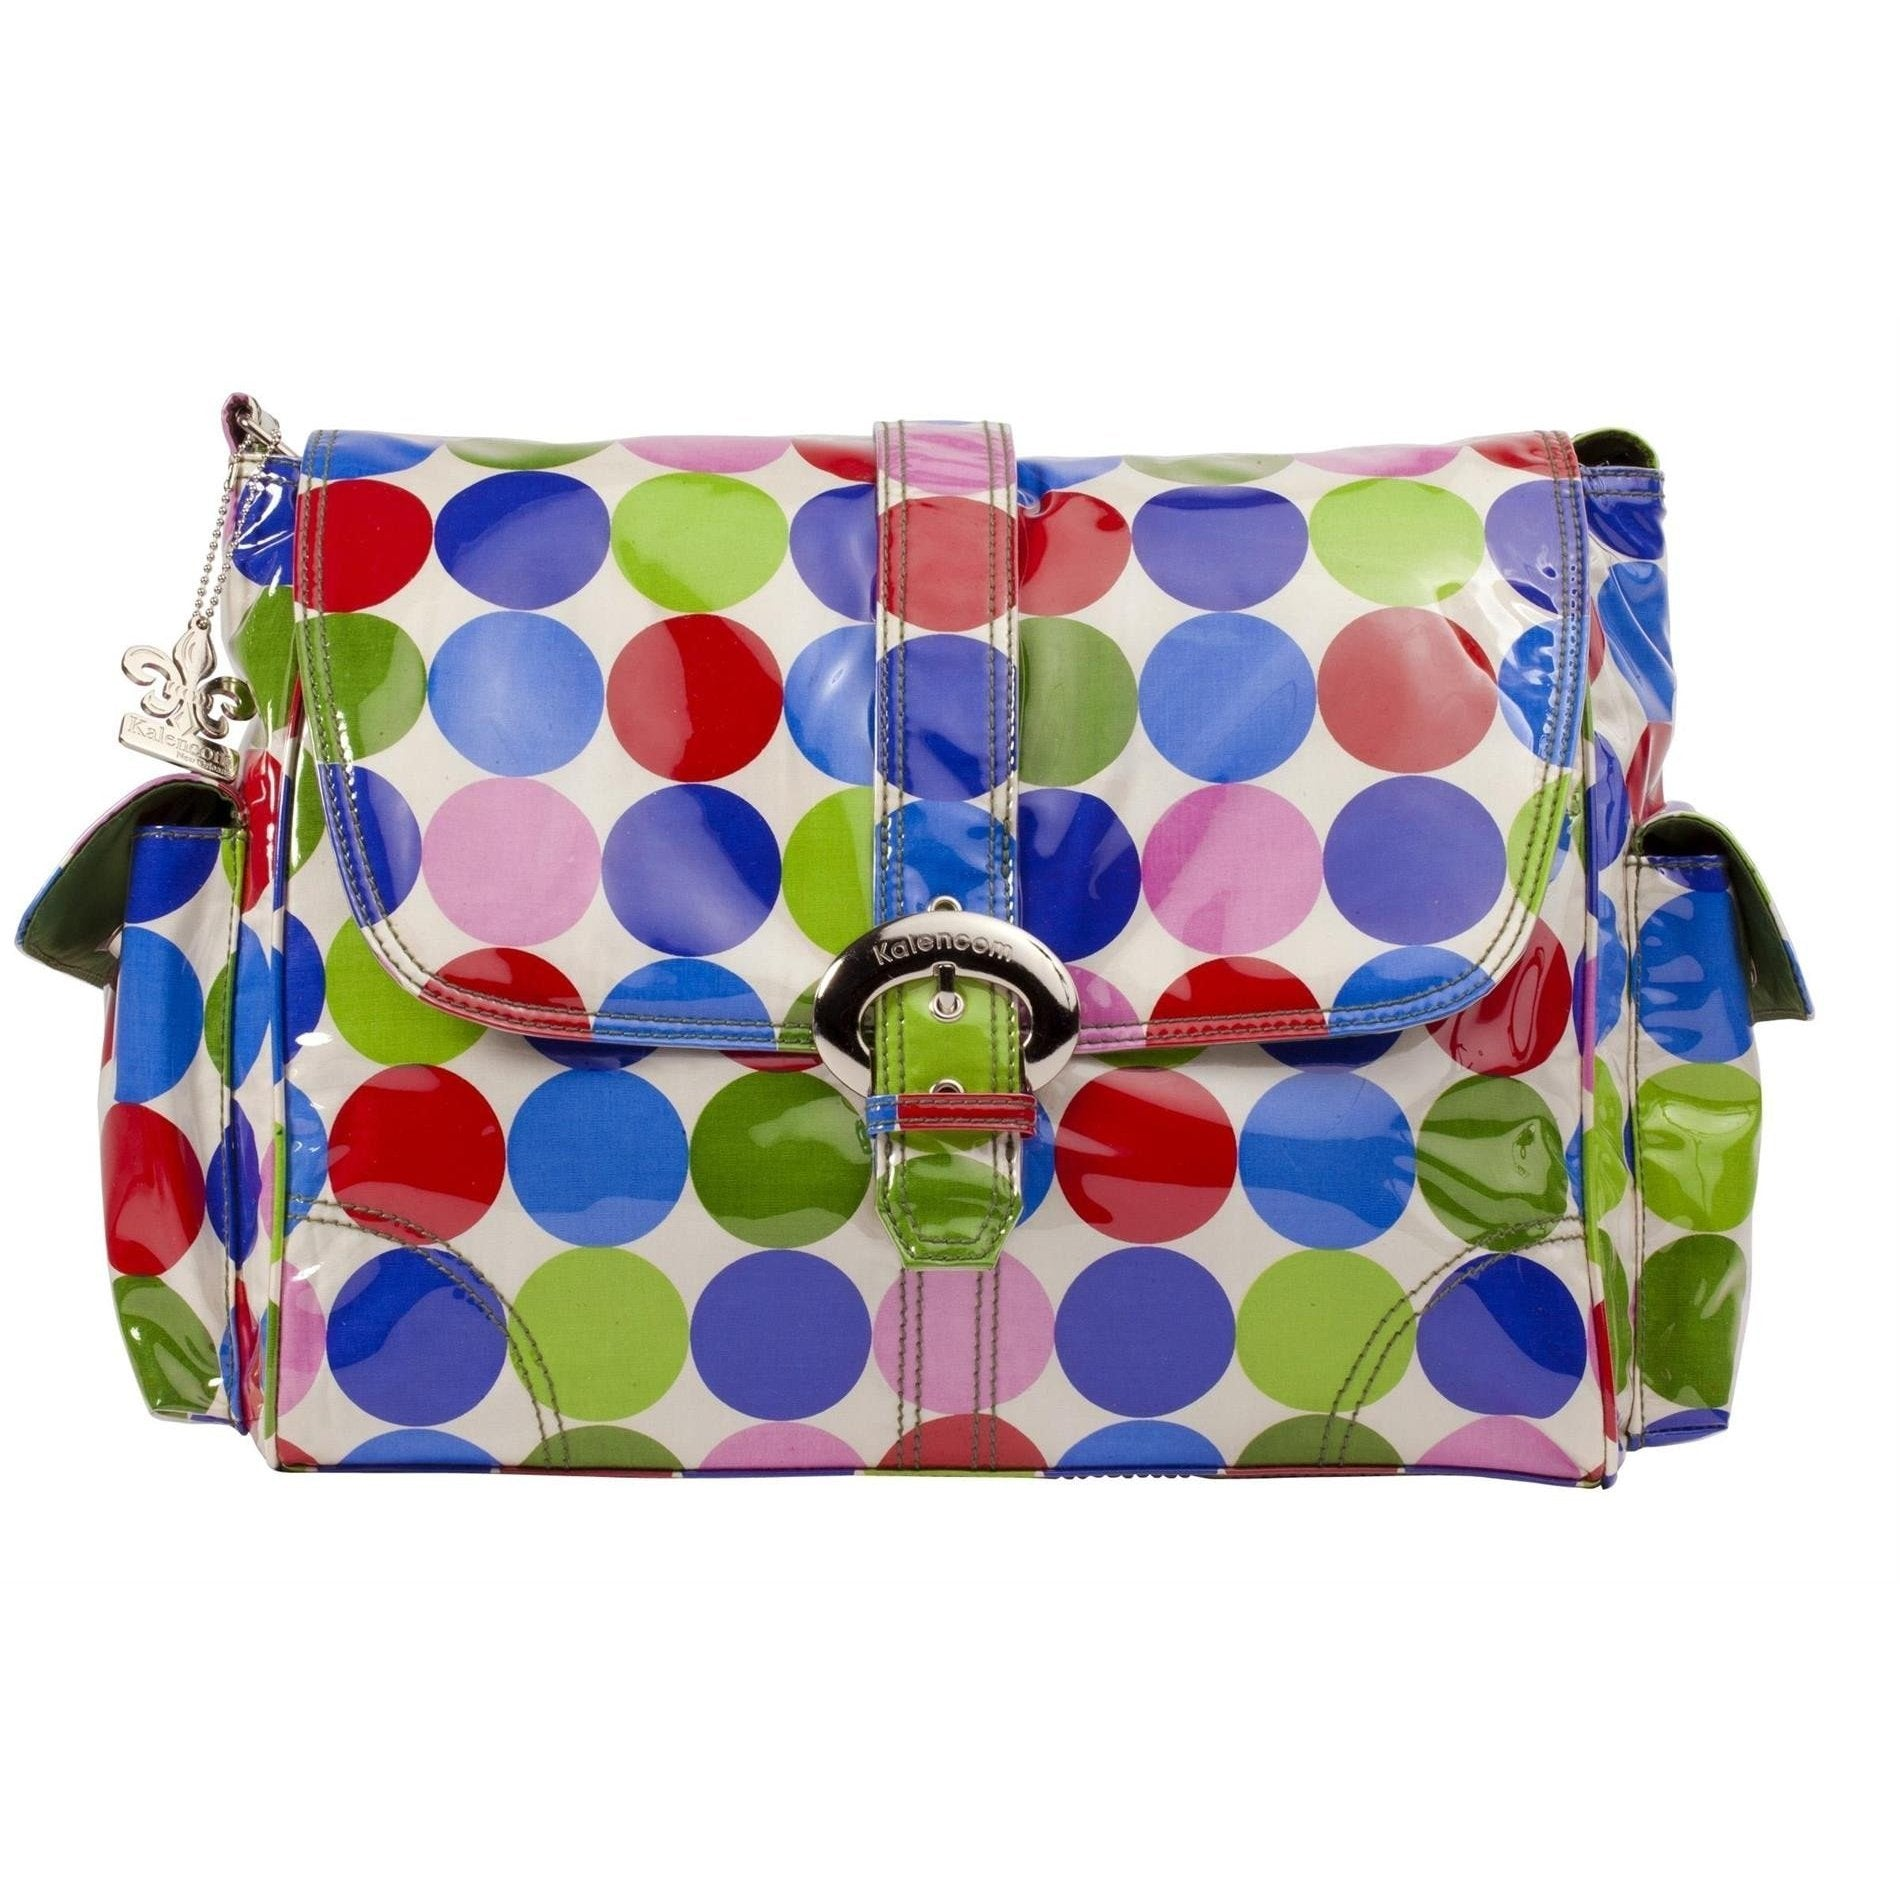 Jazz Dots Laminated Buckle Diaper Bag | Style 2960 - Kalencom-Diaper Bags-Default-Jack and Jill Boutique